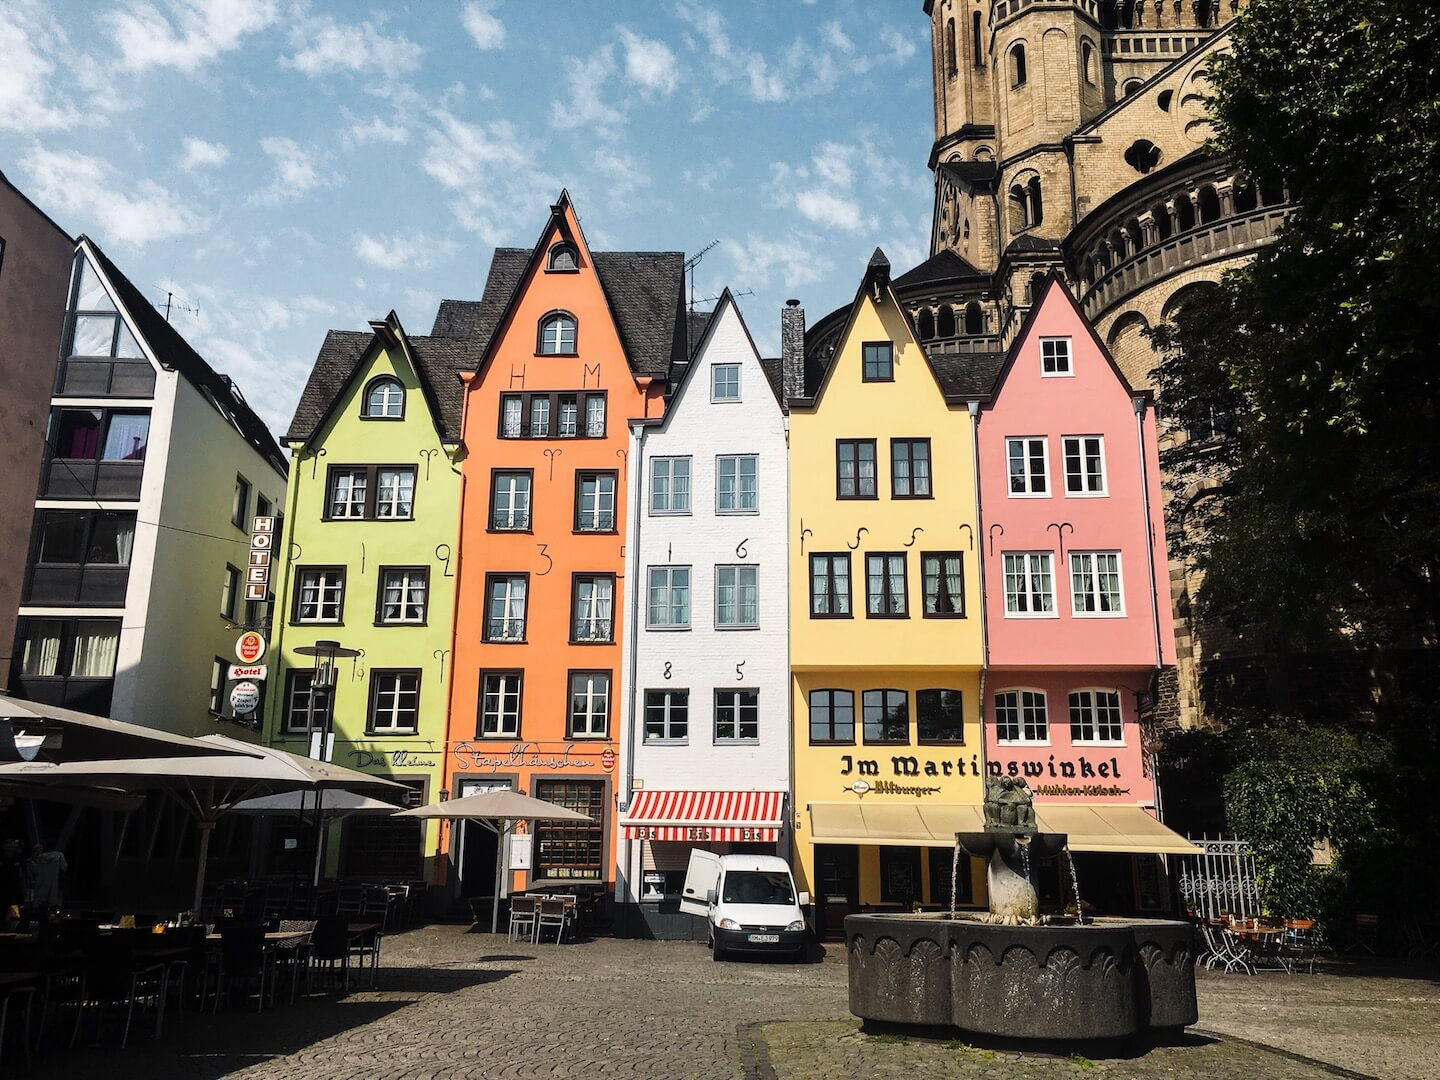 Cologne Travel Guide - where to go, what to see and do, where to eat